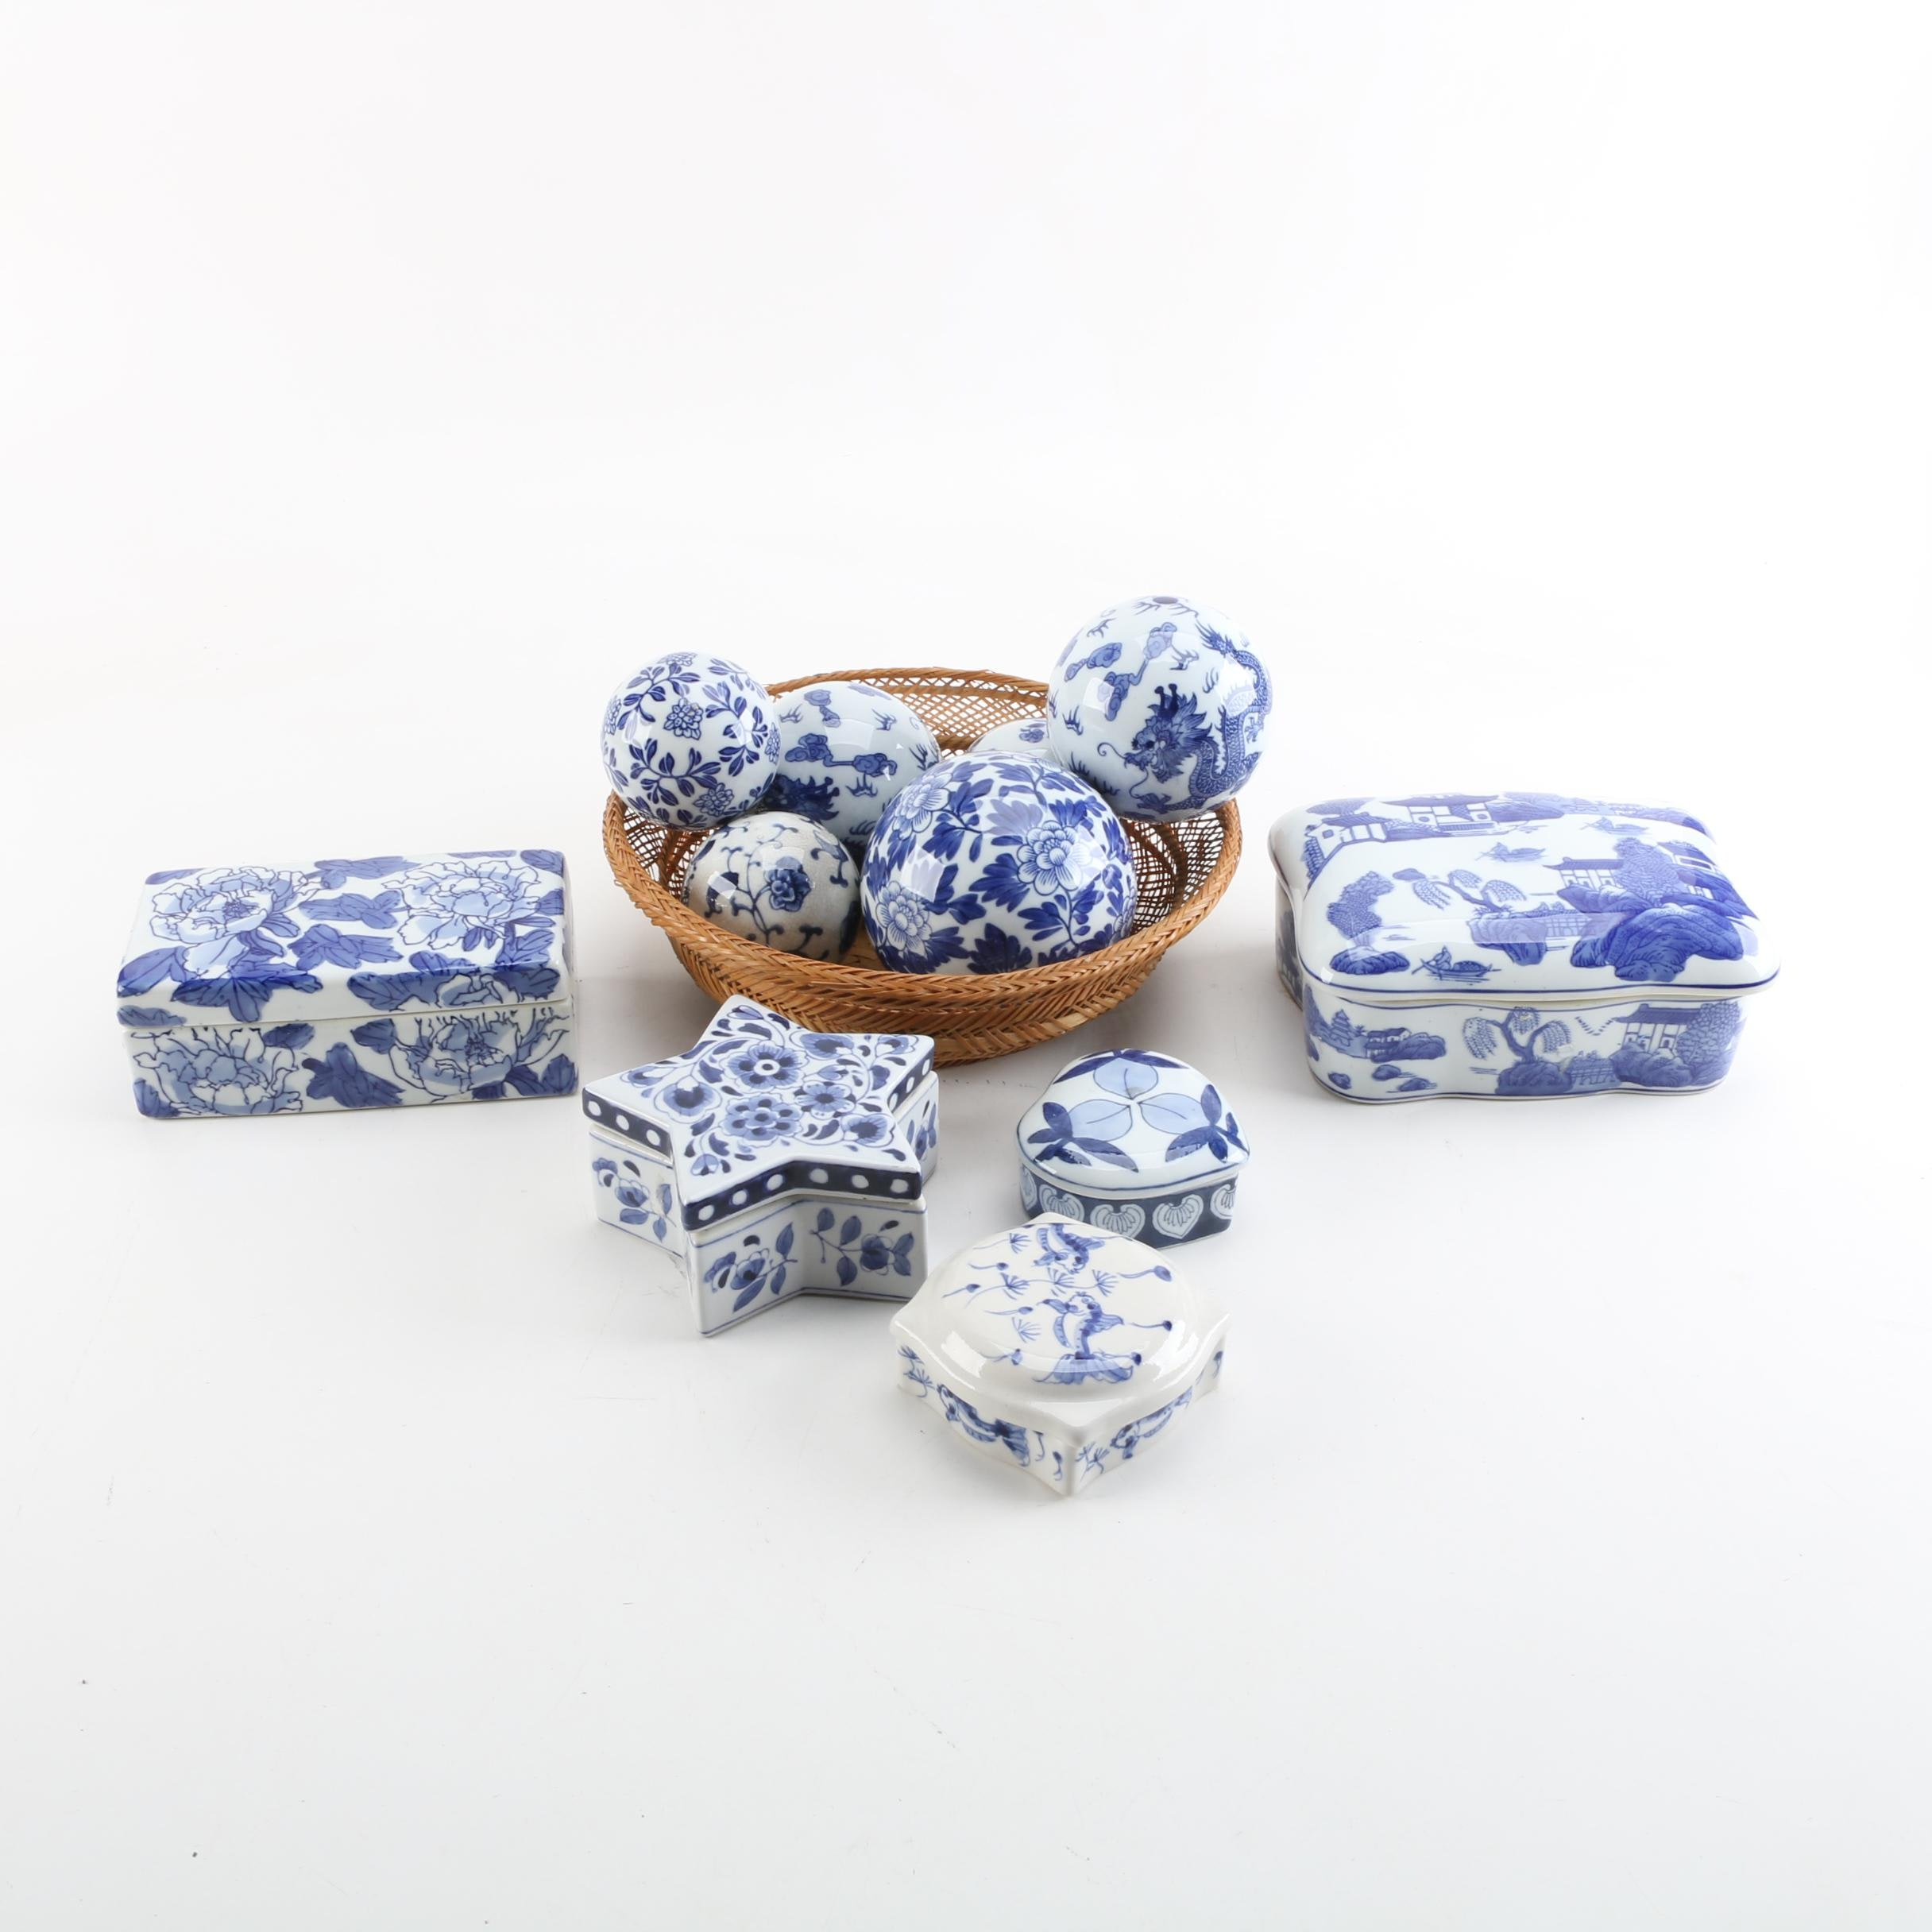 Blue and White Ceramic Trinket Boxes and Carpet Balls